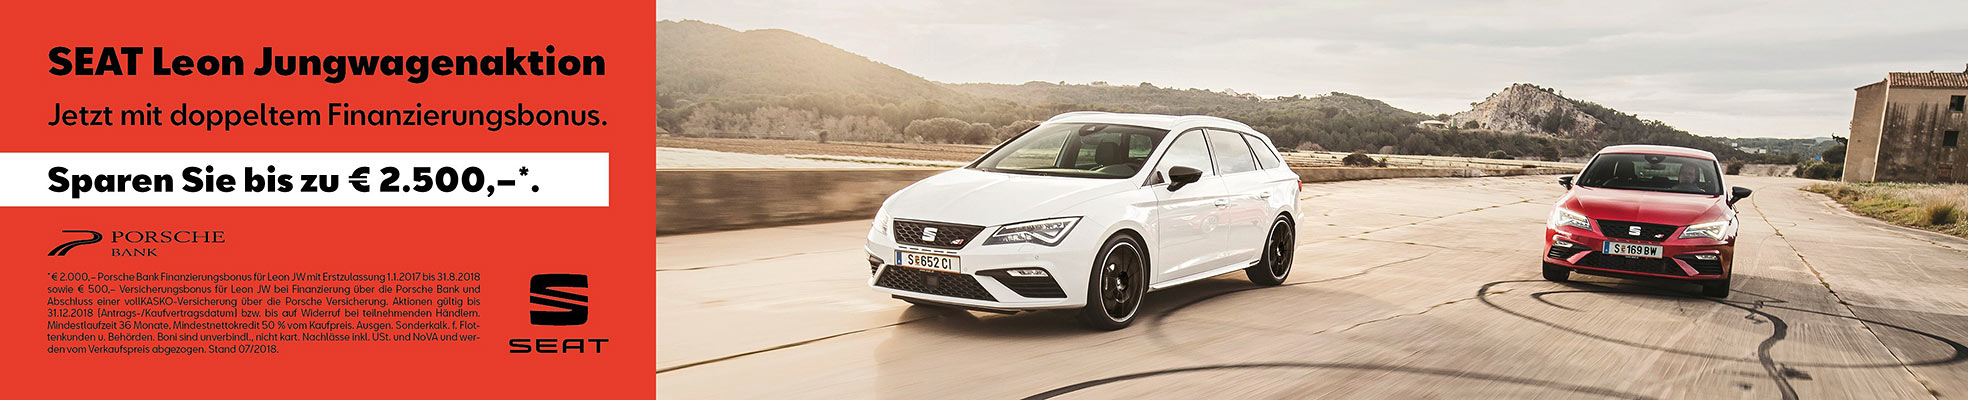 seat-leon-startseite